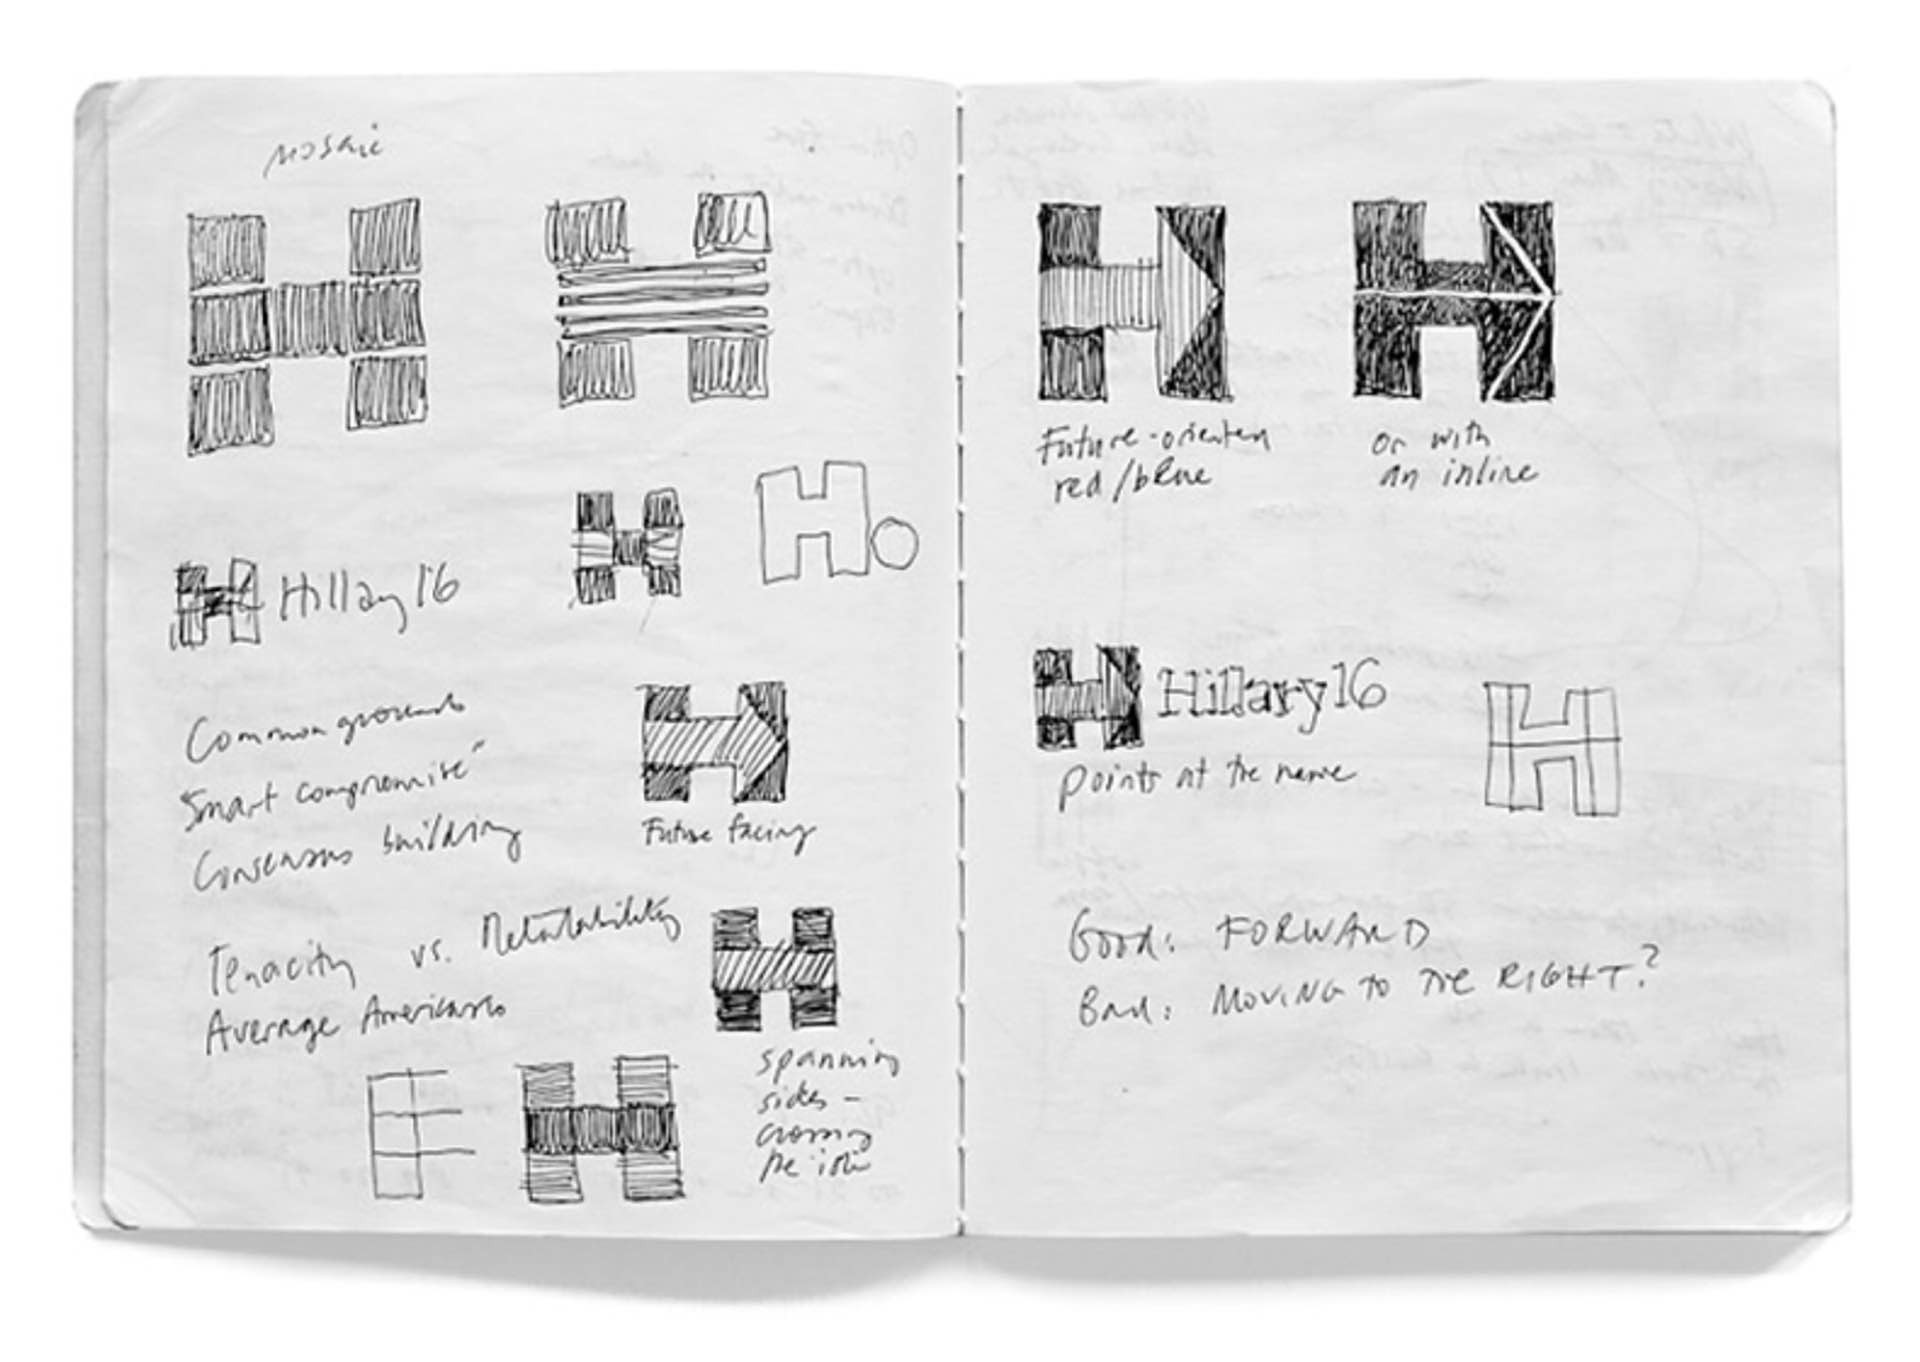 Concept sketches by Michael Bierut